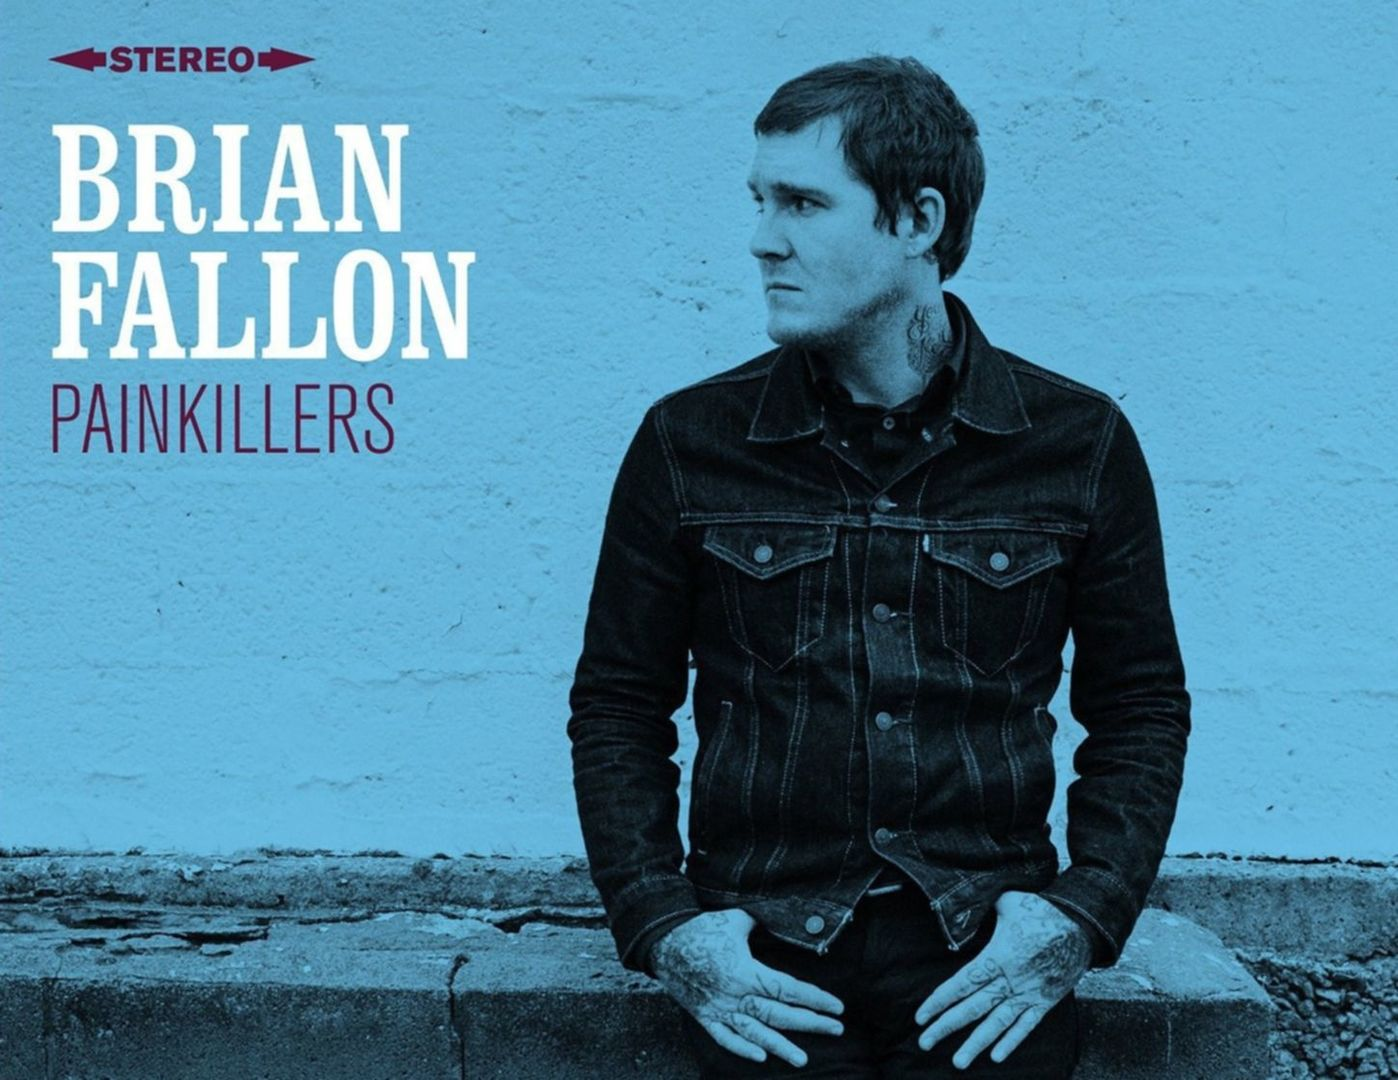 brian fallon painkillers klein